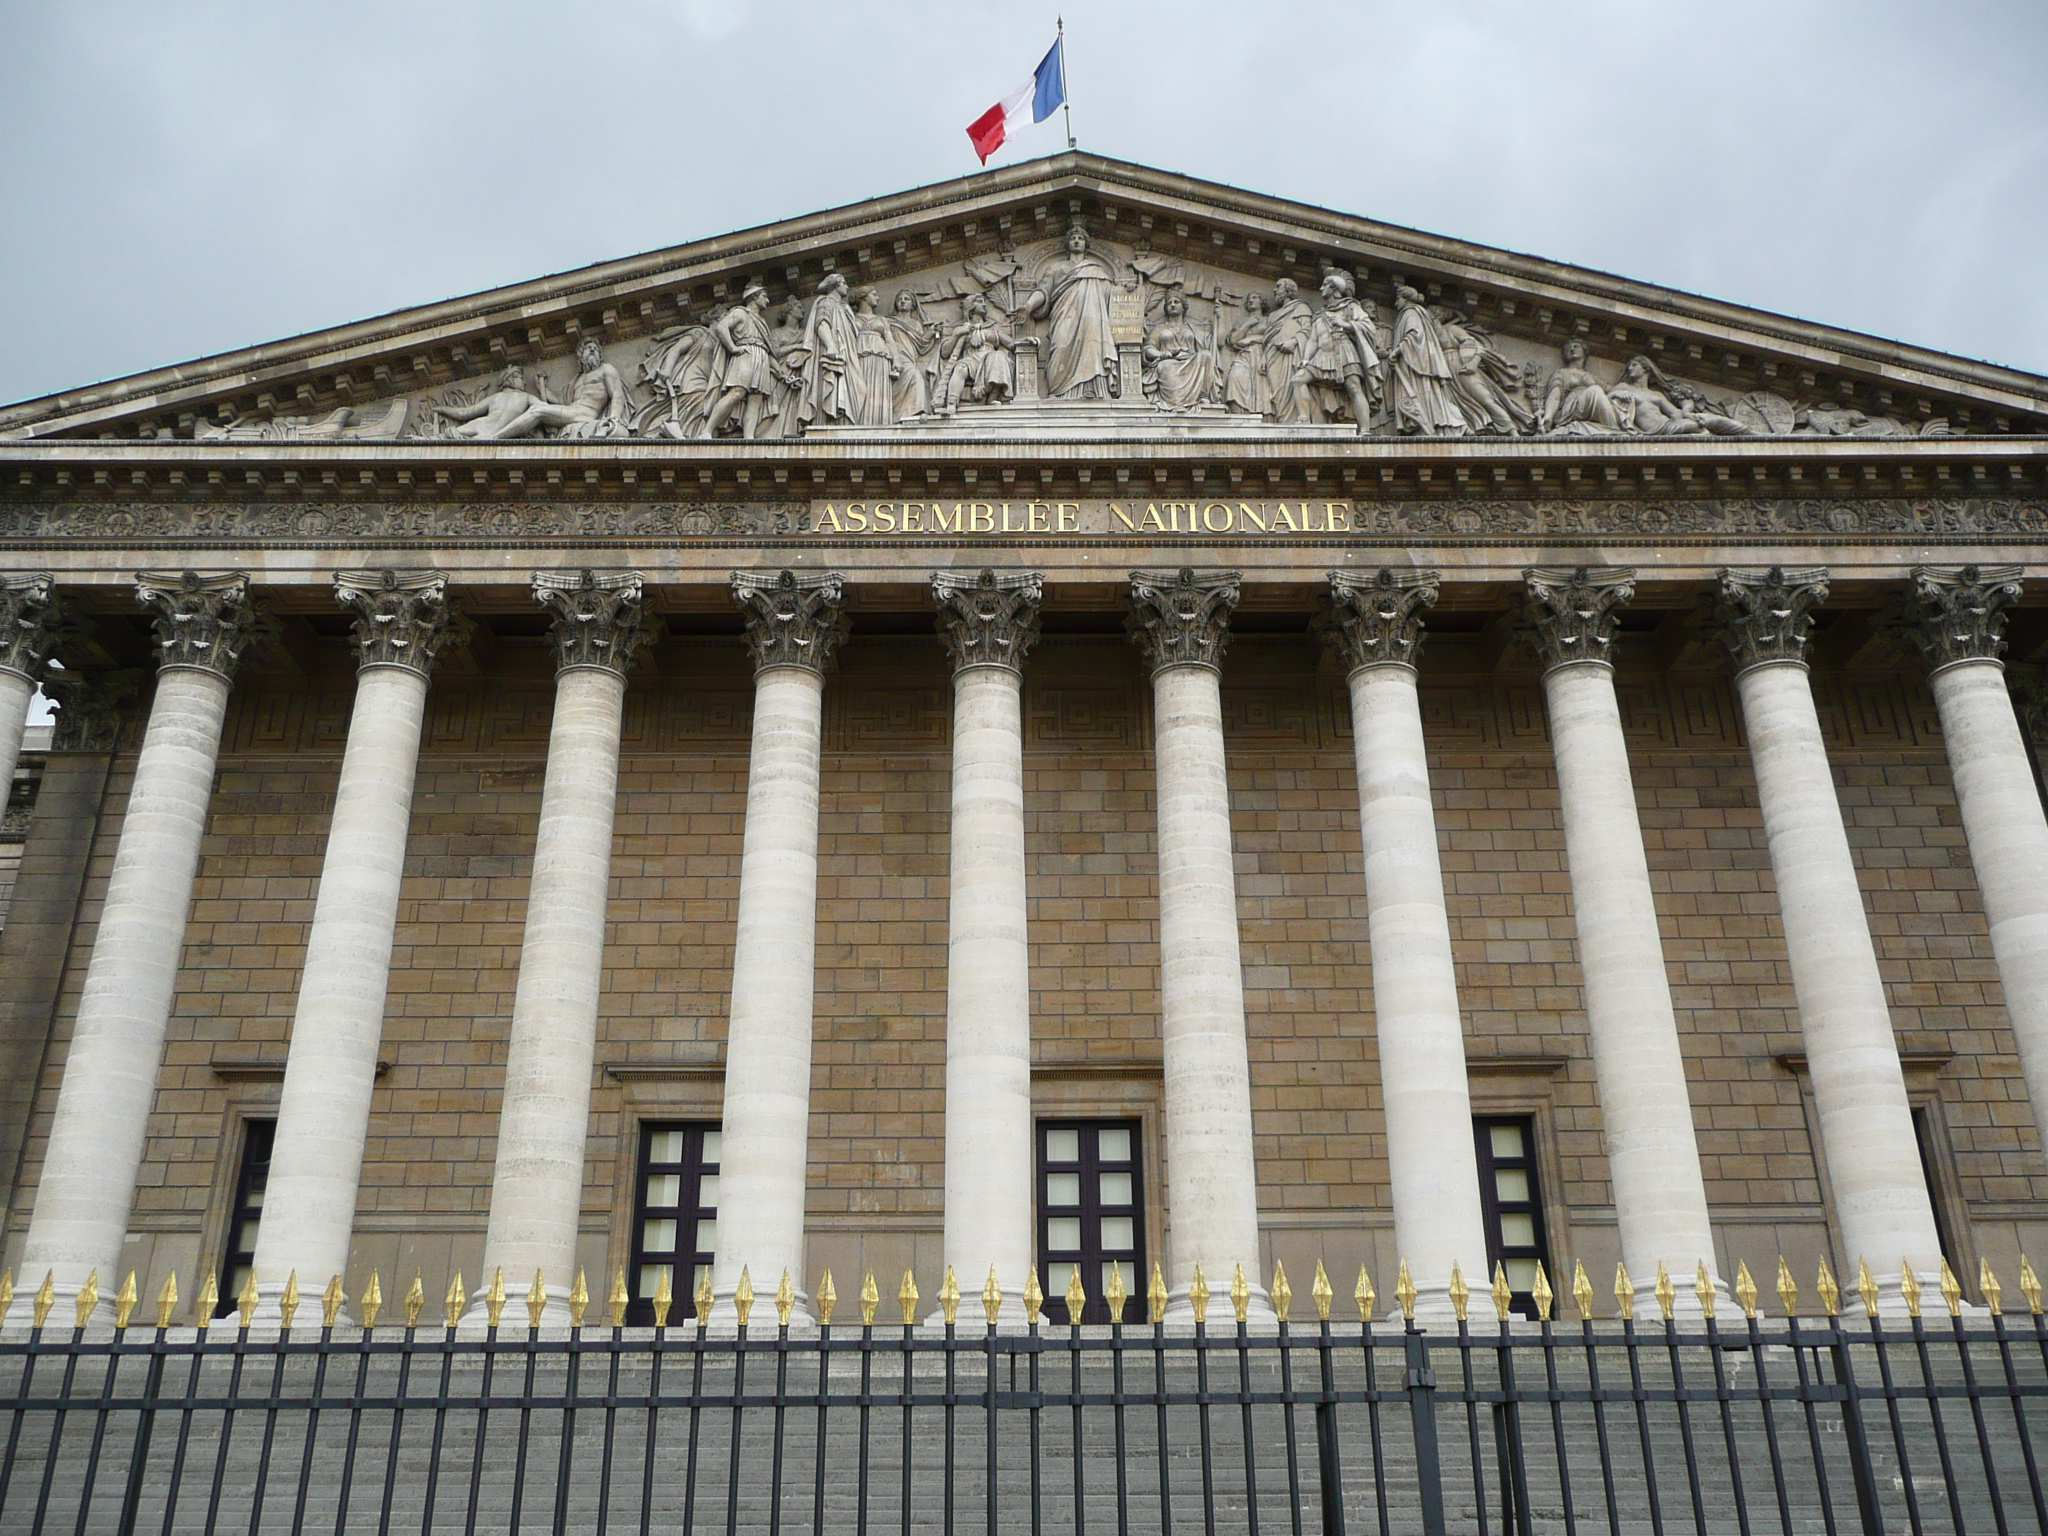 http://barbe4.free.fr/Wordpress/wp-content/assemblee_nationale.jpg